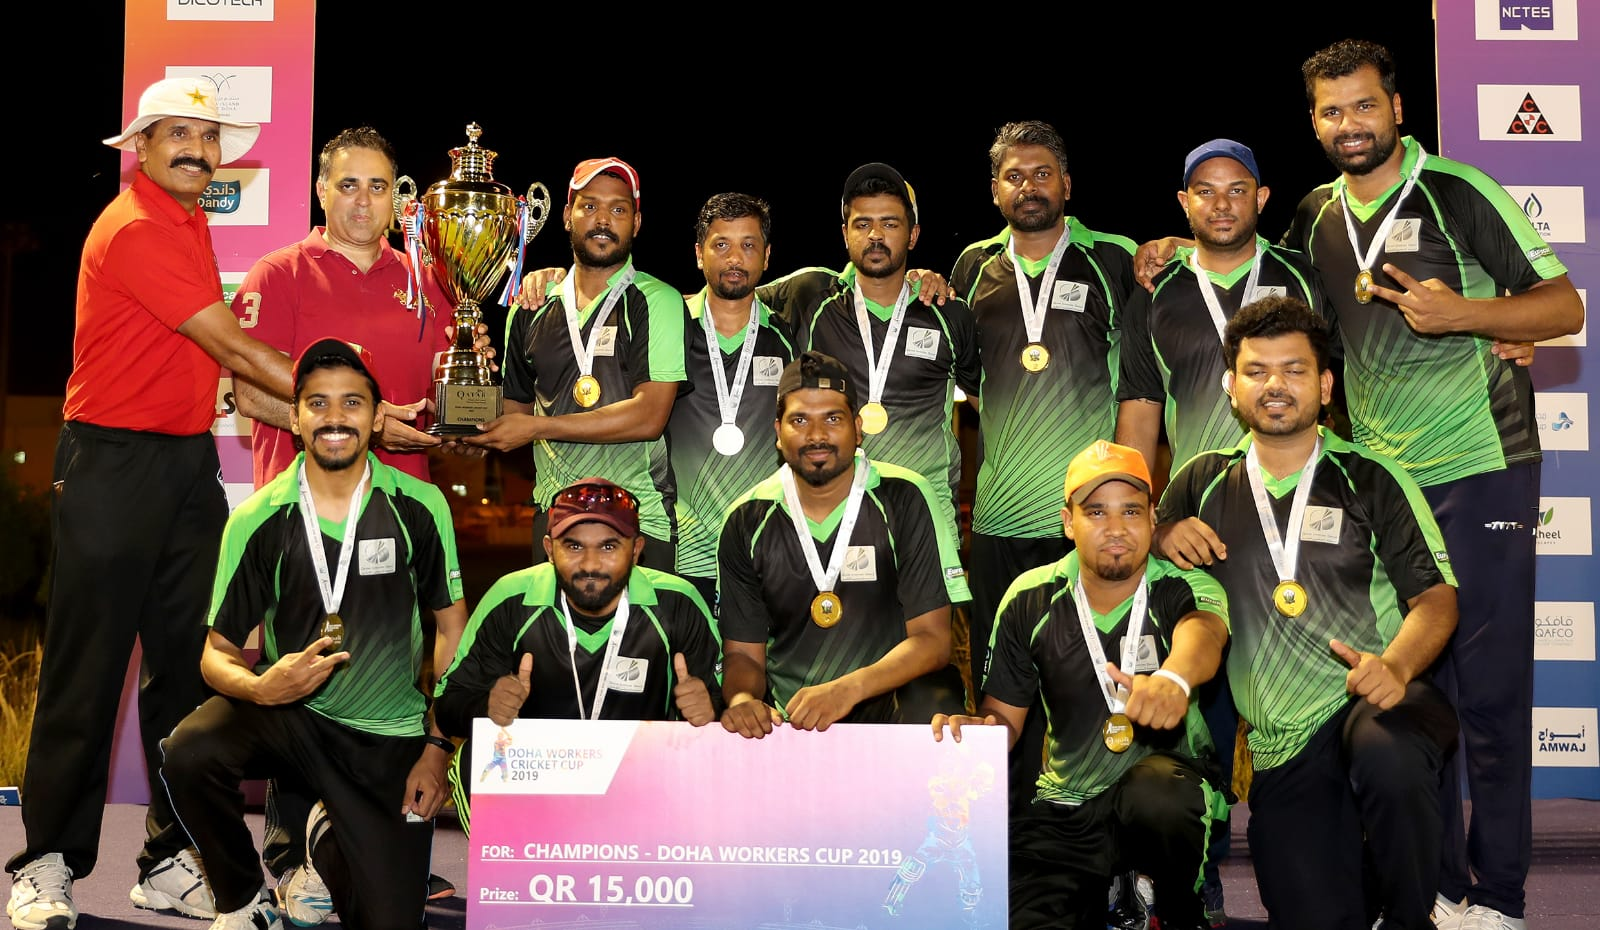 EUROPCAR QATAR TEAM WINS 2019 DOHA WORKERS CRICKET CUP